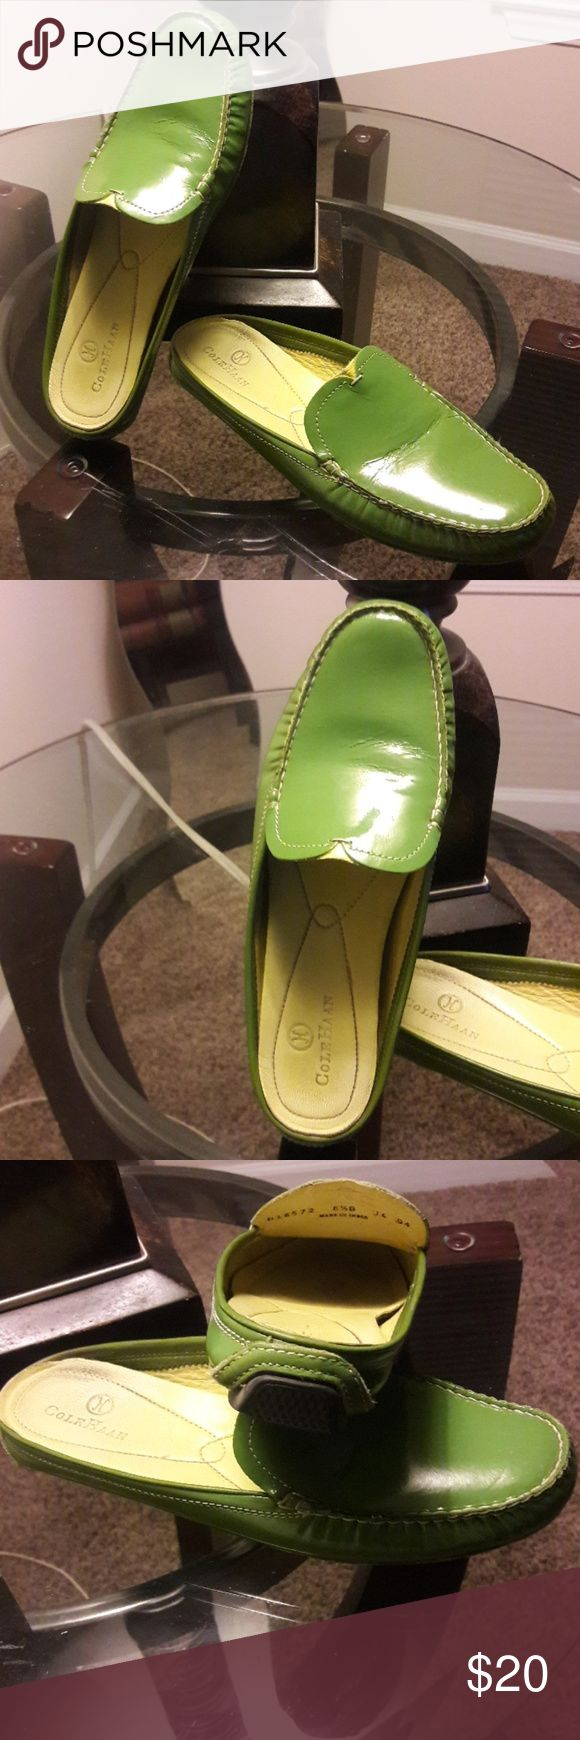 Cole Haan Women's Slides Comfy women's slides by Cole Haan.  Shoes are not new and have been worn but are in good condition and ready for more comfort wear. Good looking fashion forward shoes. Cole Haan Shoes Flats & Loafers